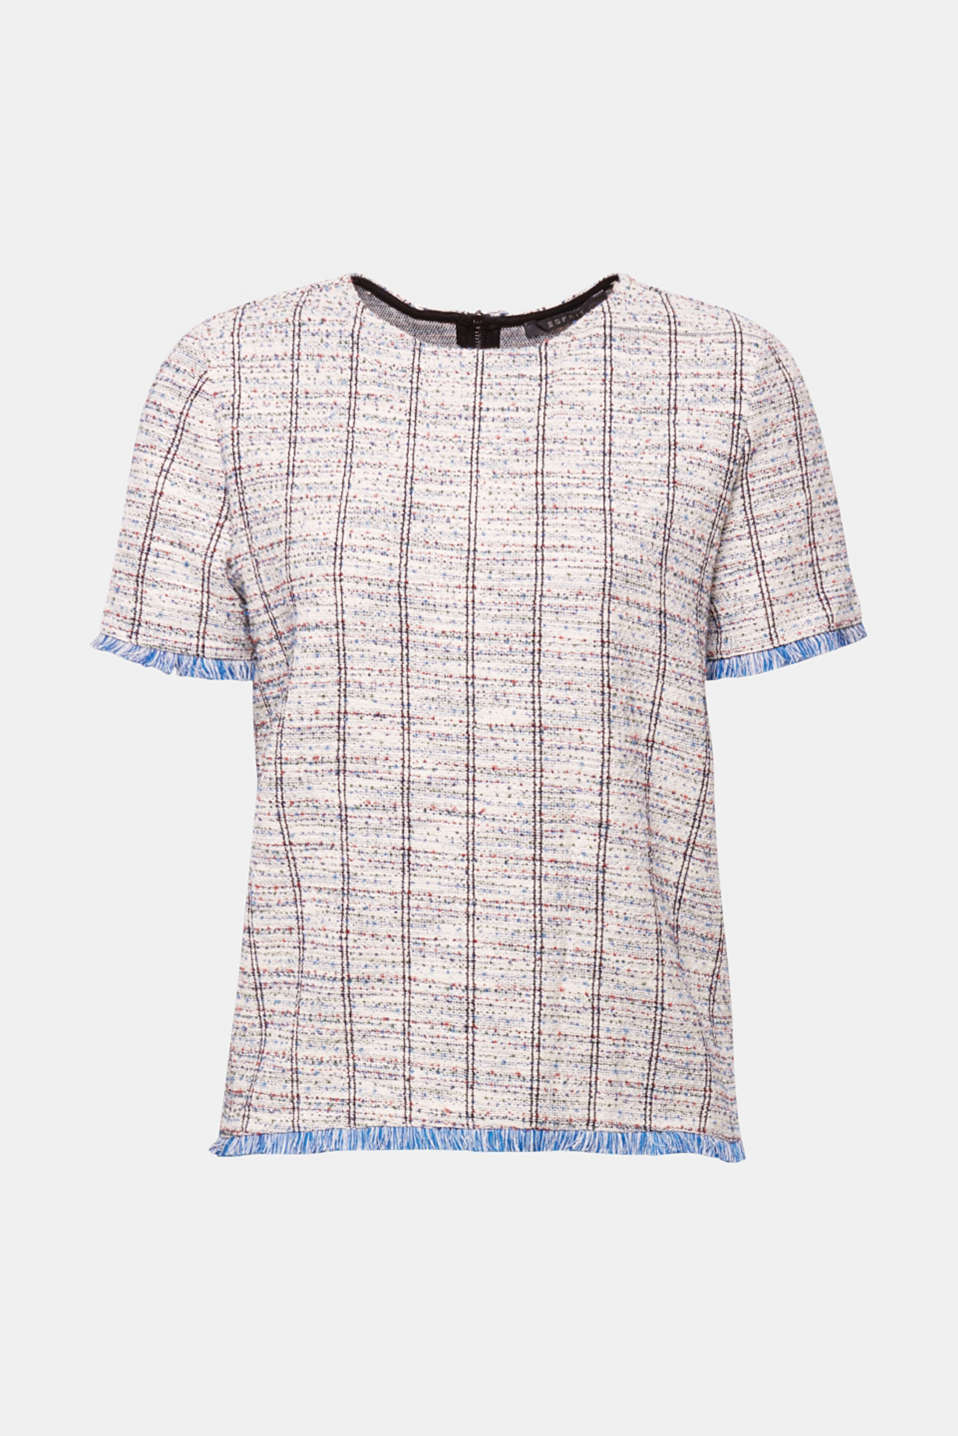 Can be styled to look casual with jeans or chic with a pencil skirt: T-shirt made of multi-colour bouclé with a glittering finish and fringed edges.